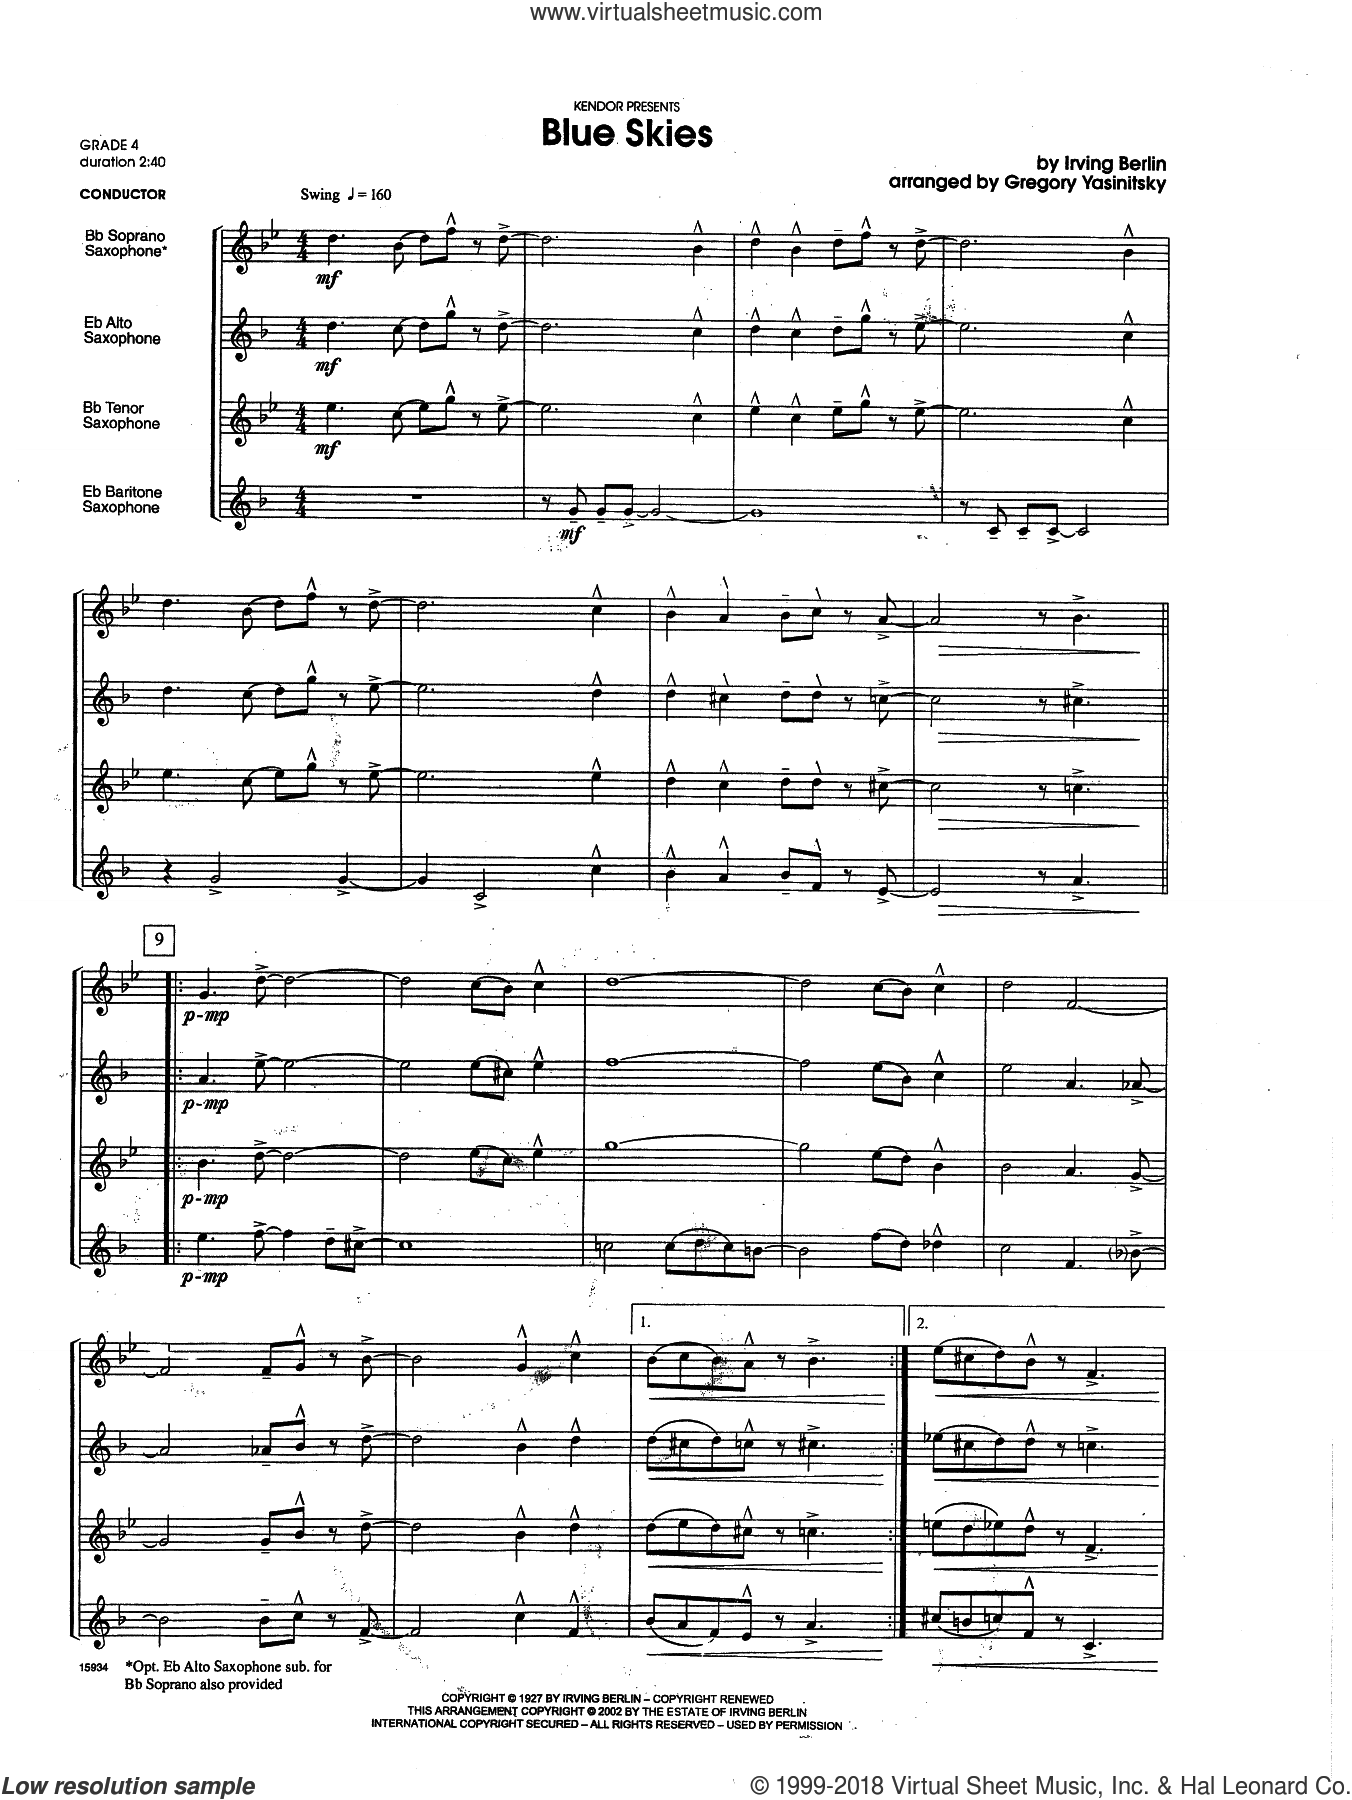 Blue Skies (COMPLETE) sheet music for saxophone quartet by Berlin and Gregory Yasinitsky, intermediate. Score Image Preview.